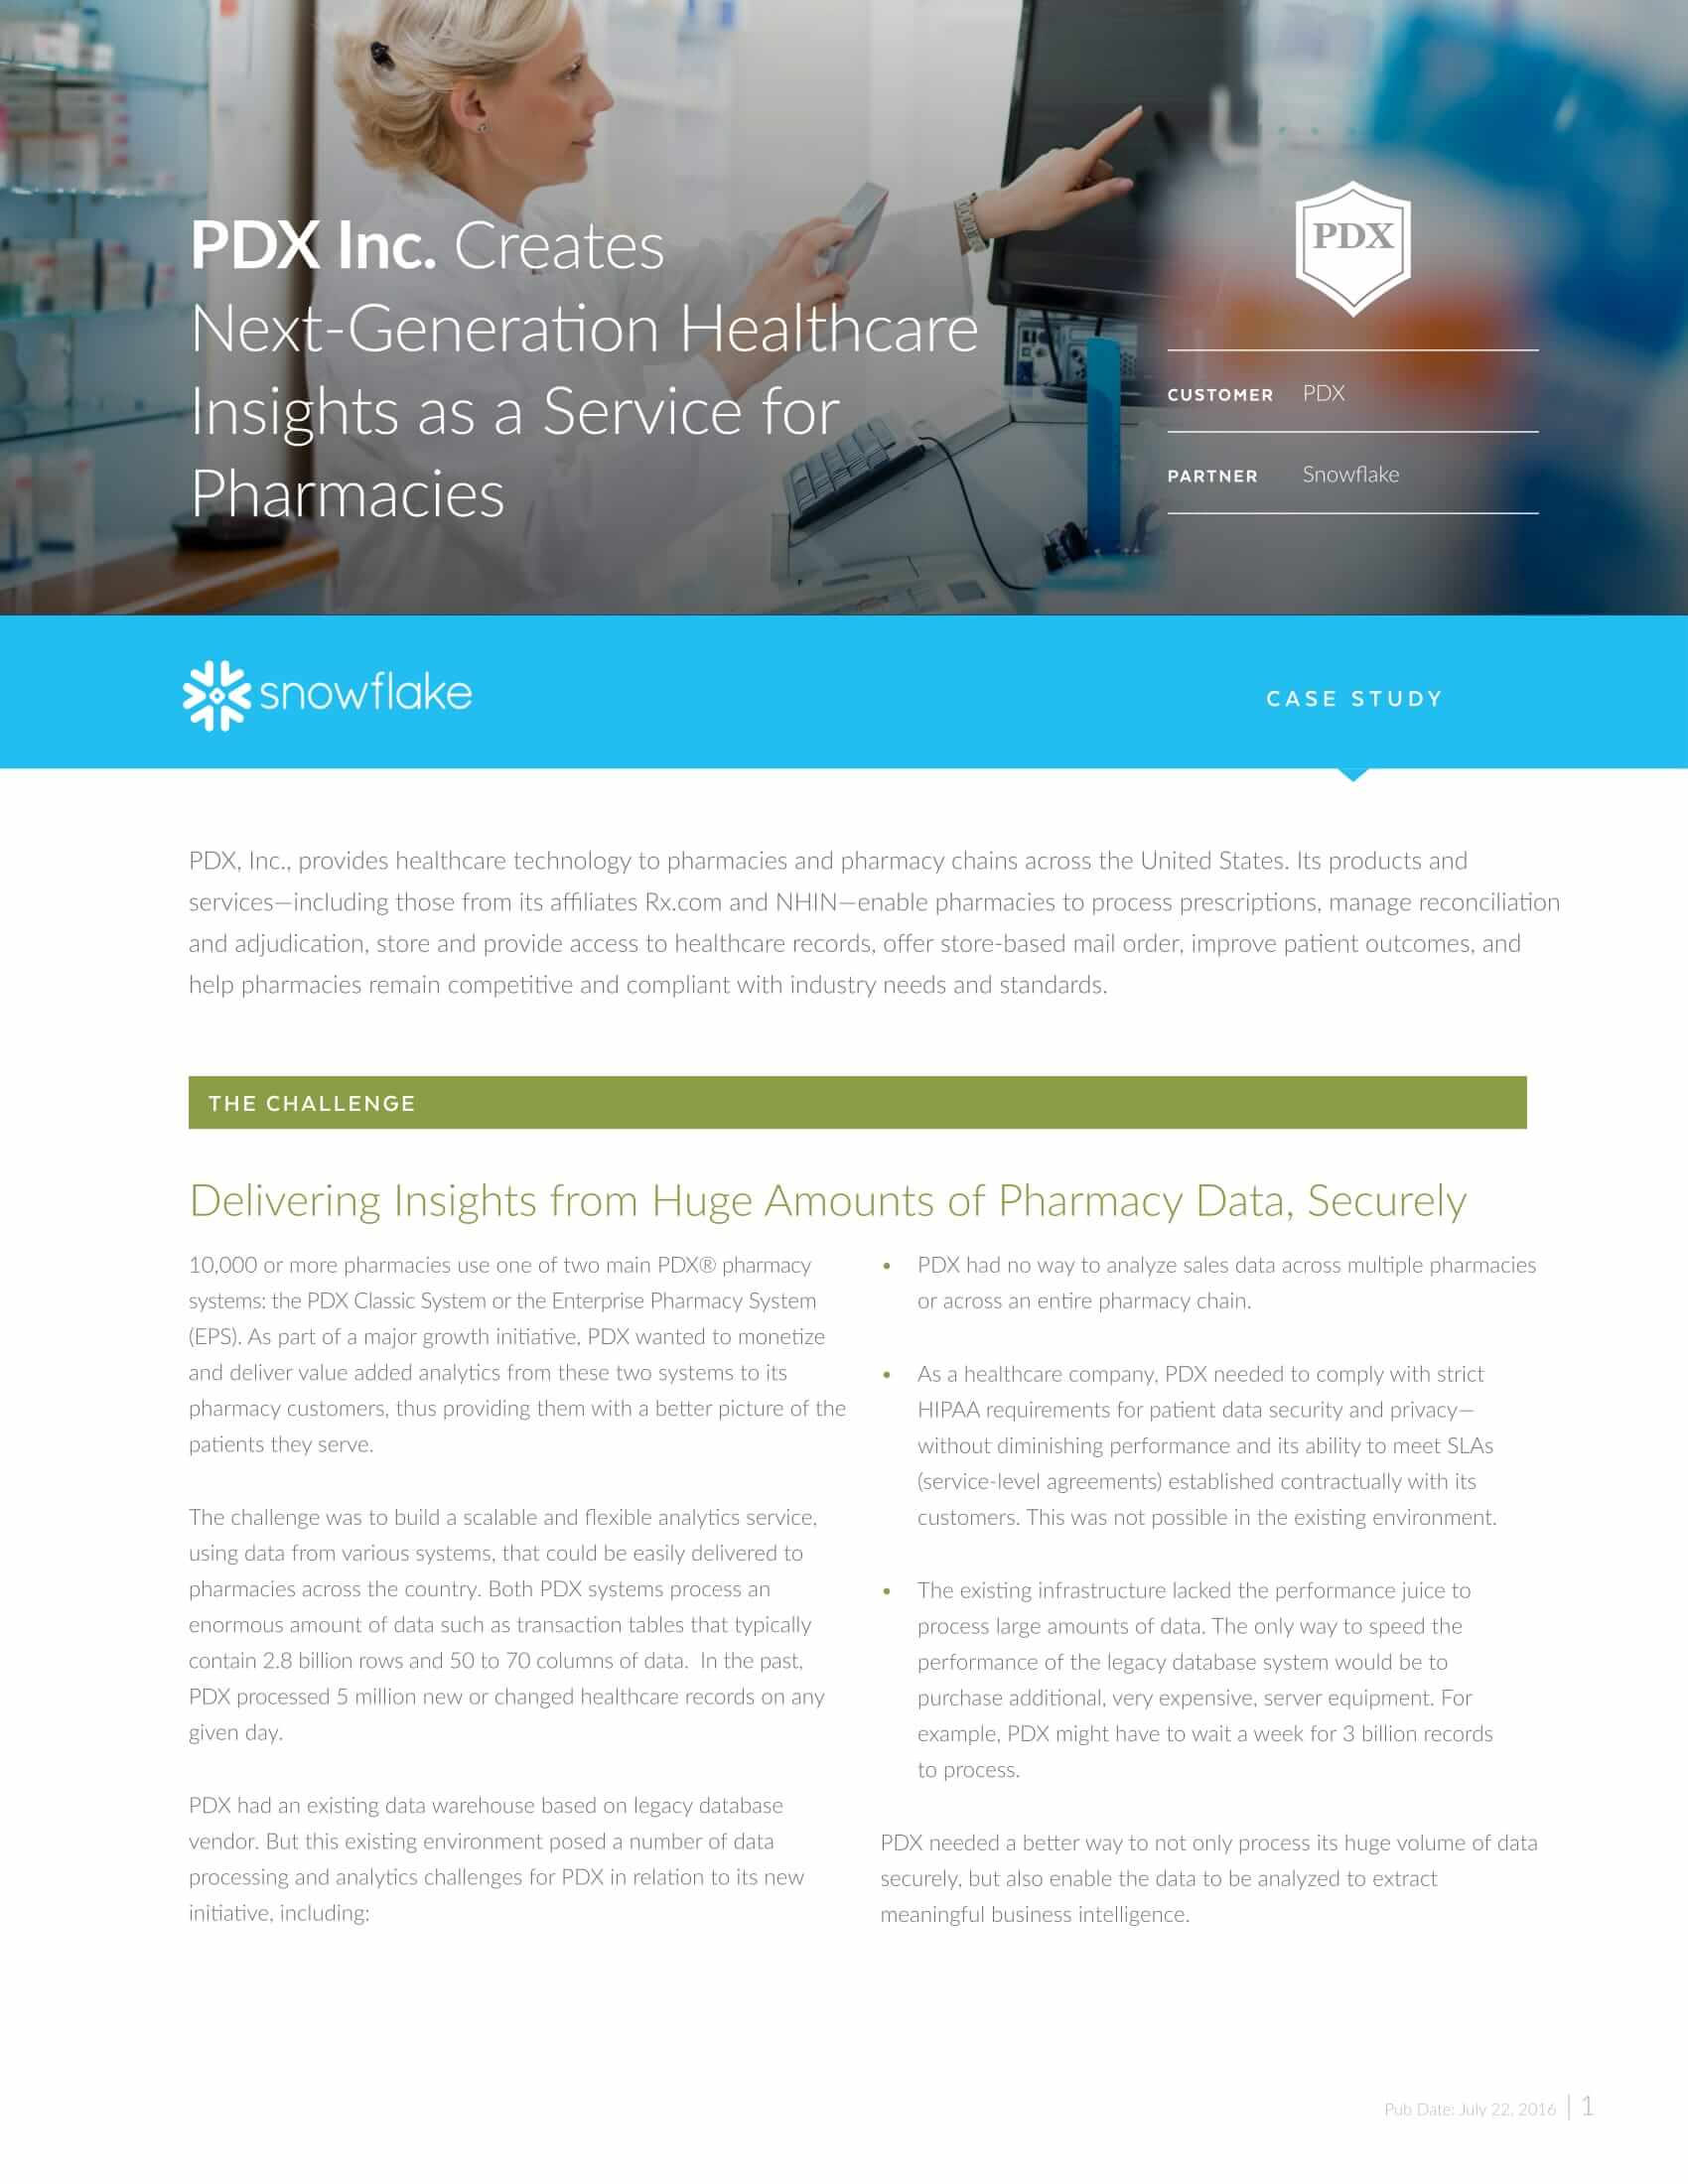 Snowflake - PDX Inc  Creates Next-Generation Healthcare Insights as